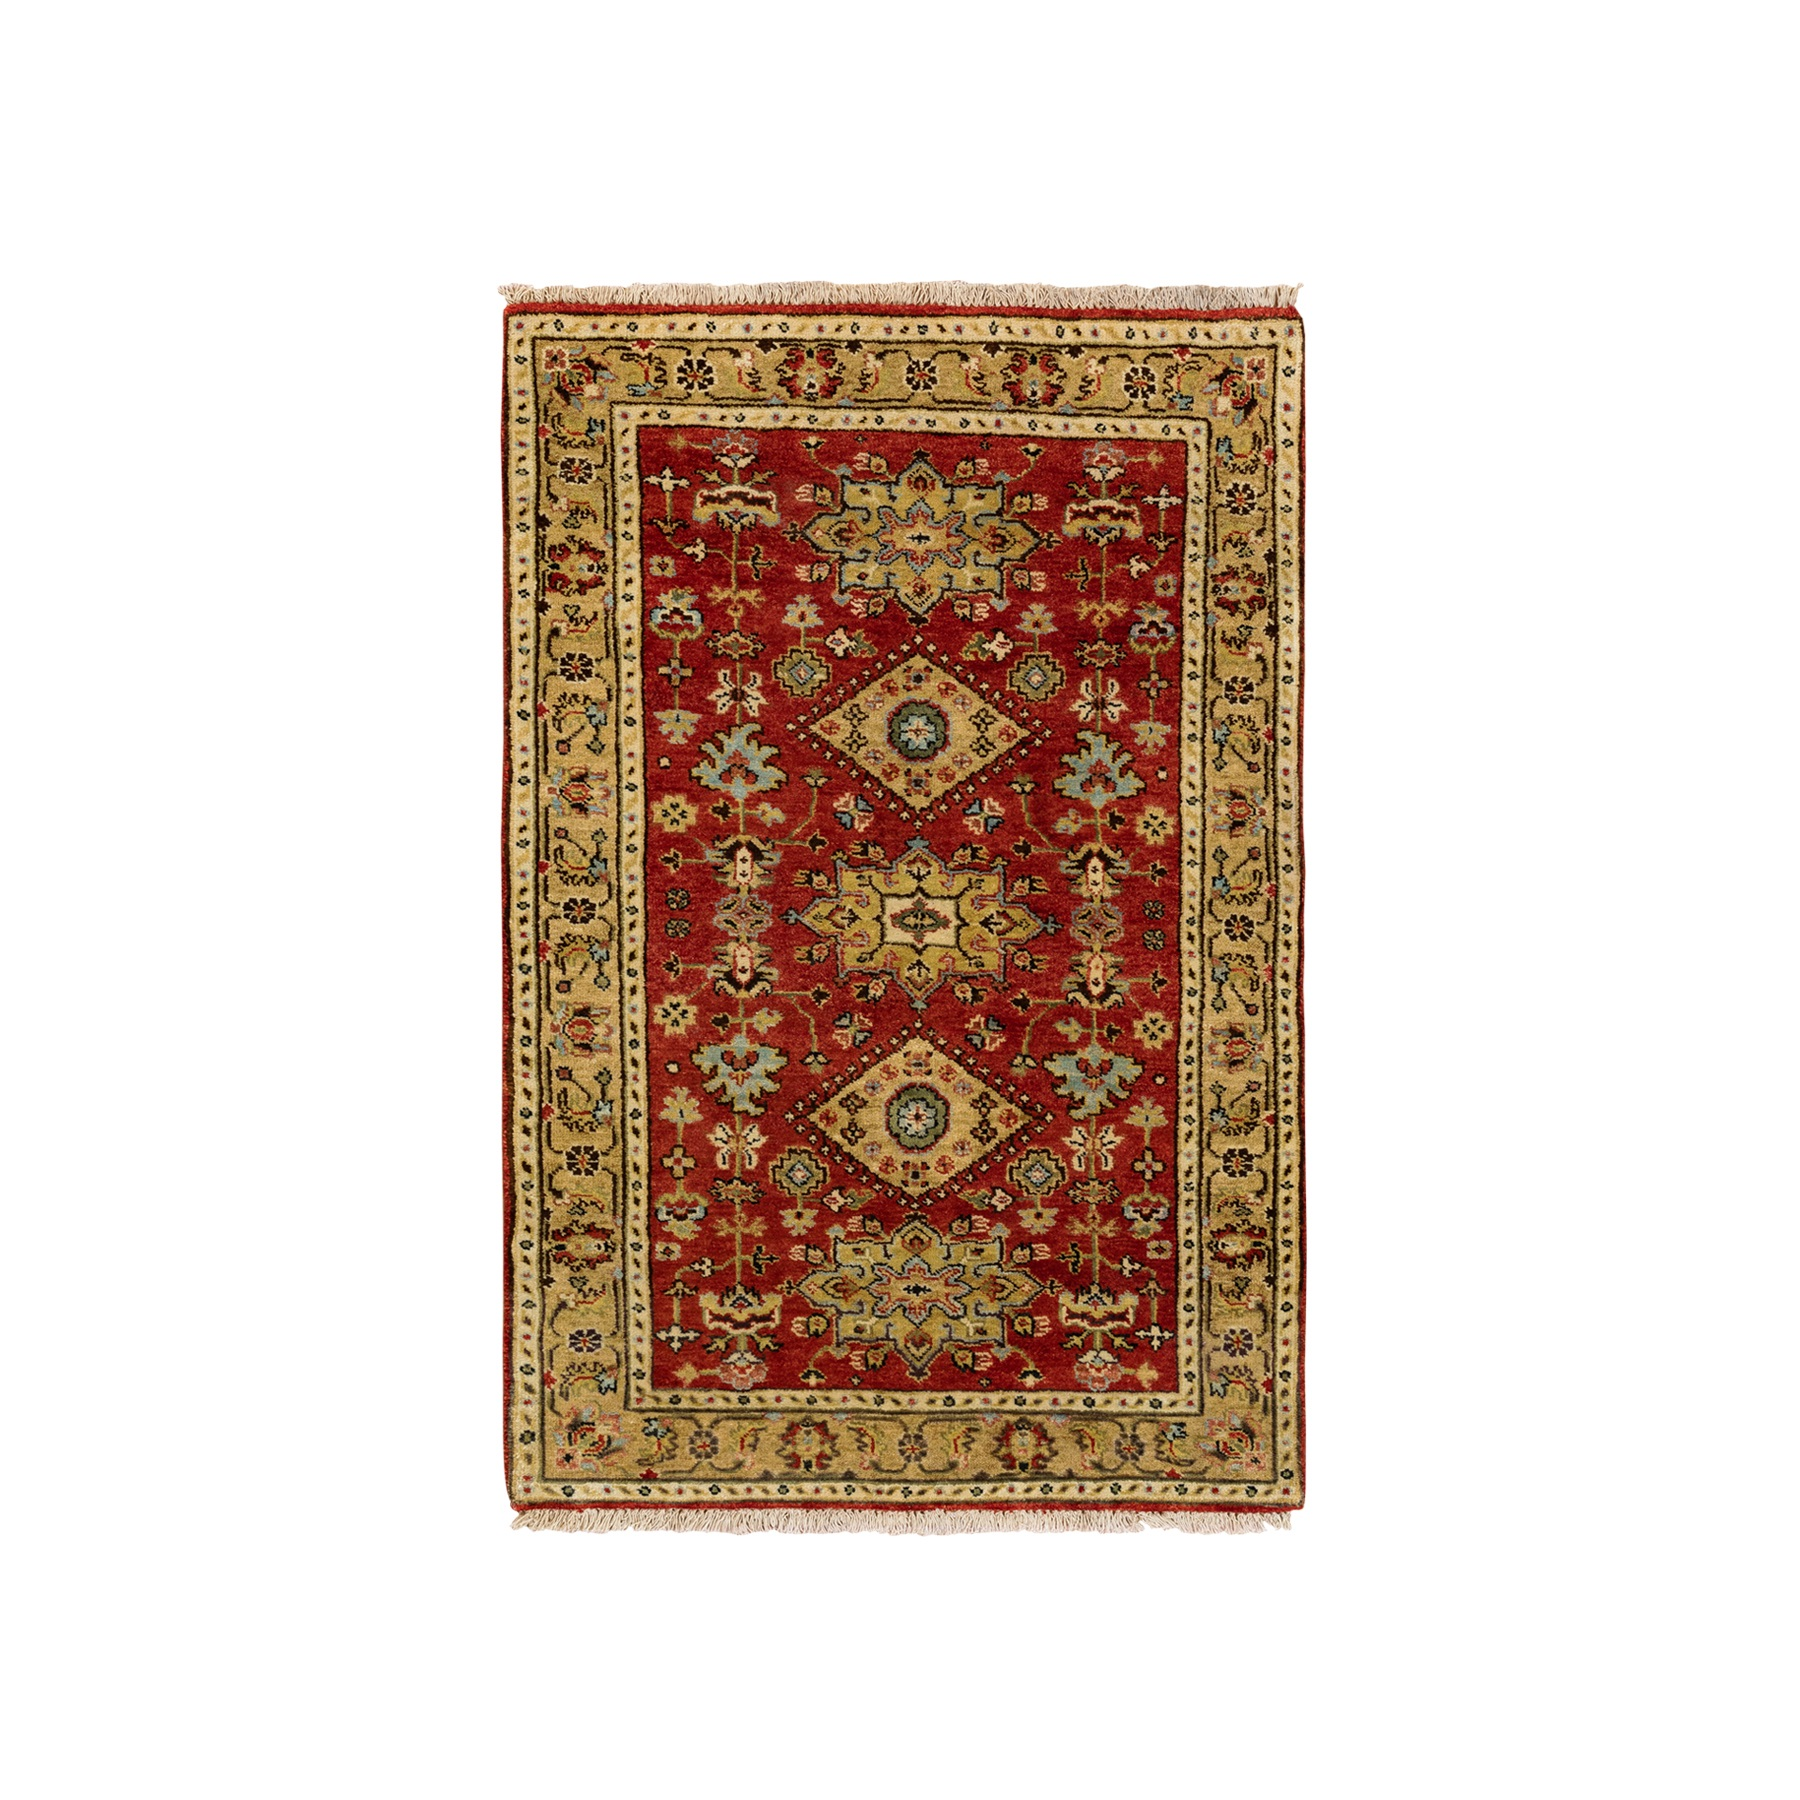 "3'1""x5' Red Karajeh Design Pure Wool Hand Knotted Oriental Rug"